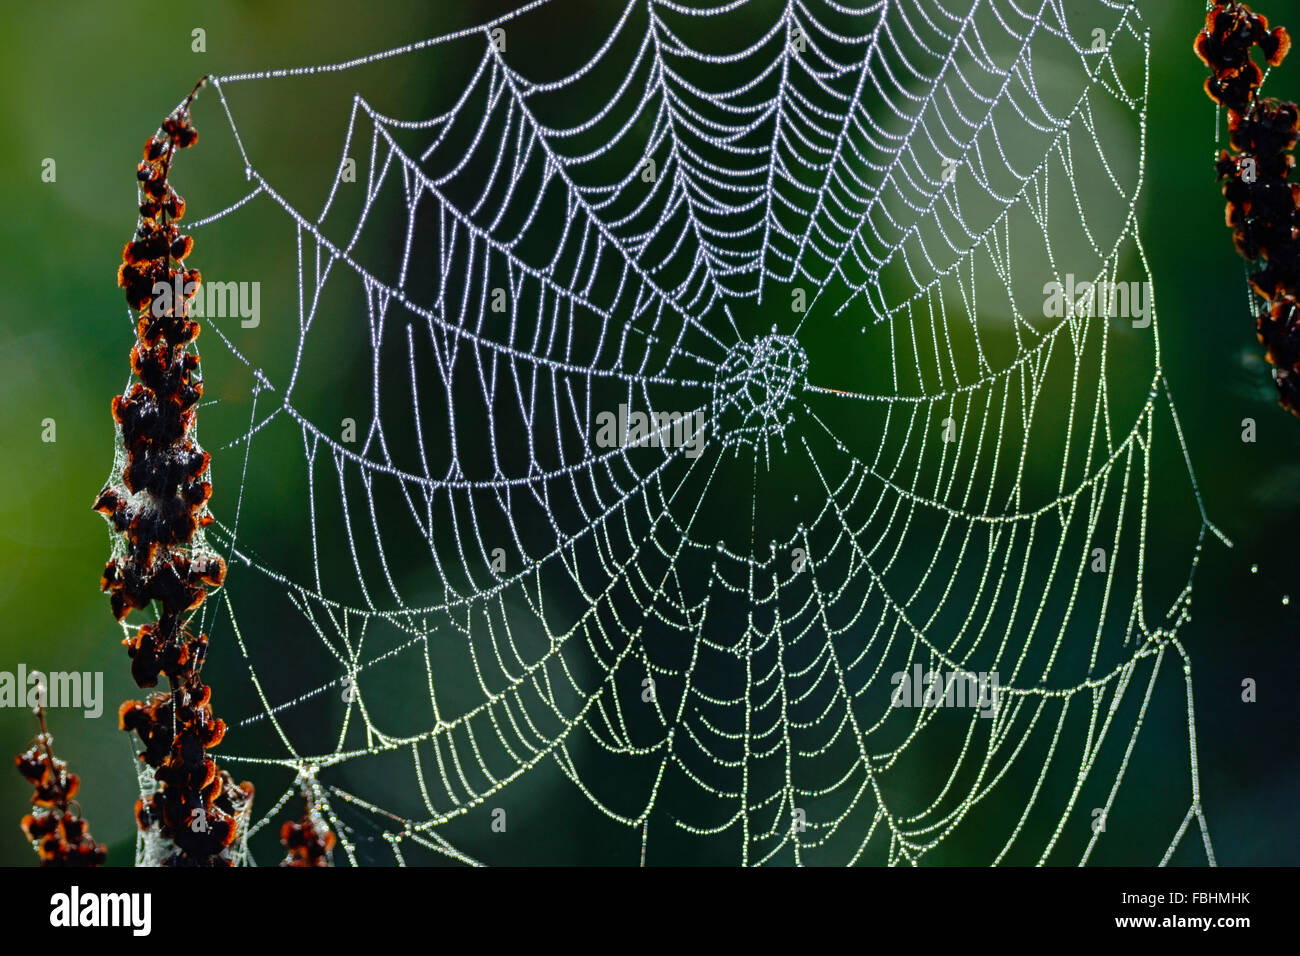 Spider's web suspended in weeds by a marsh with morning dew on the web. - Stock Image